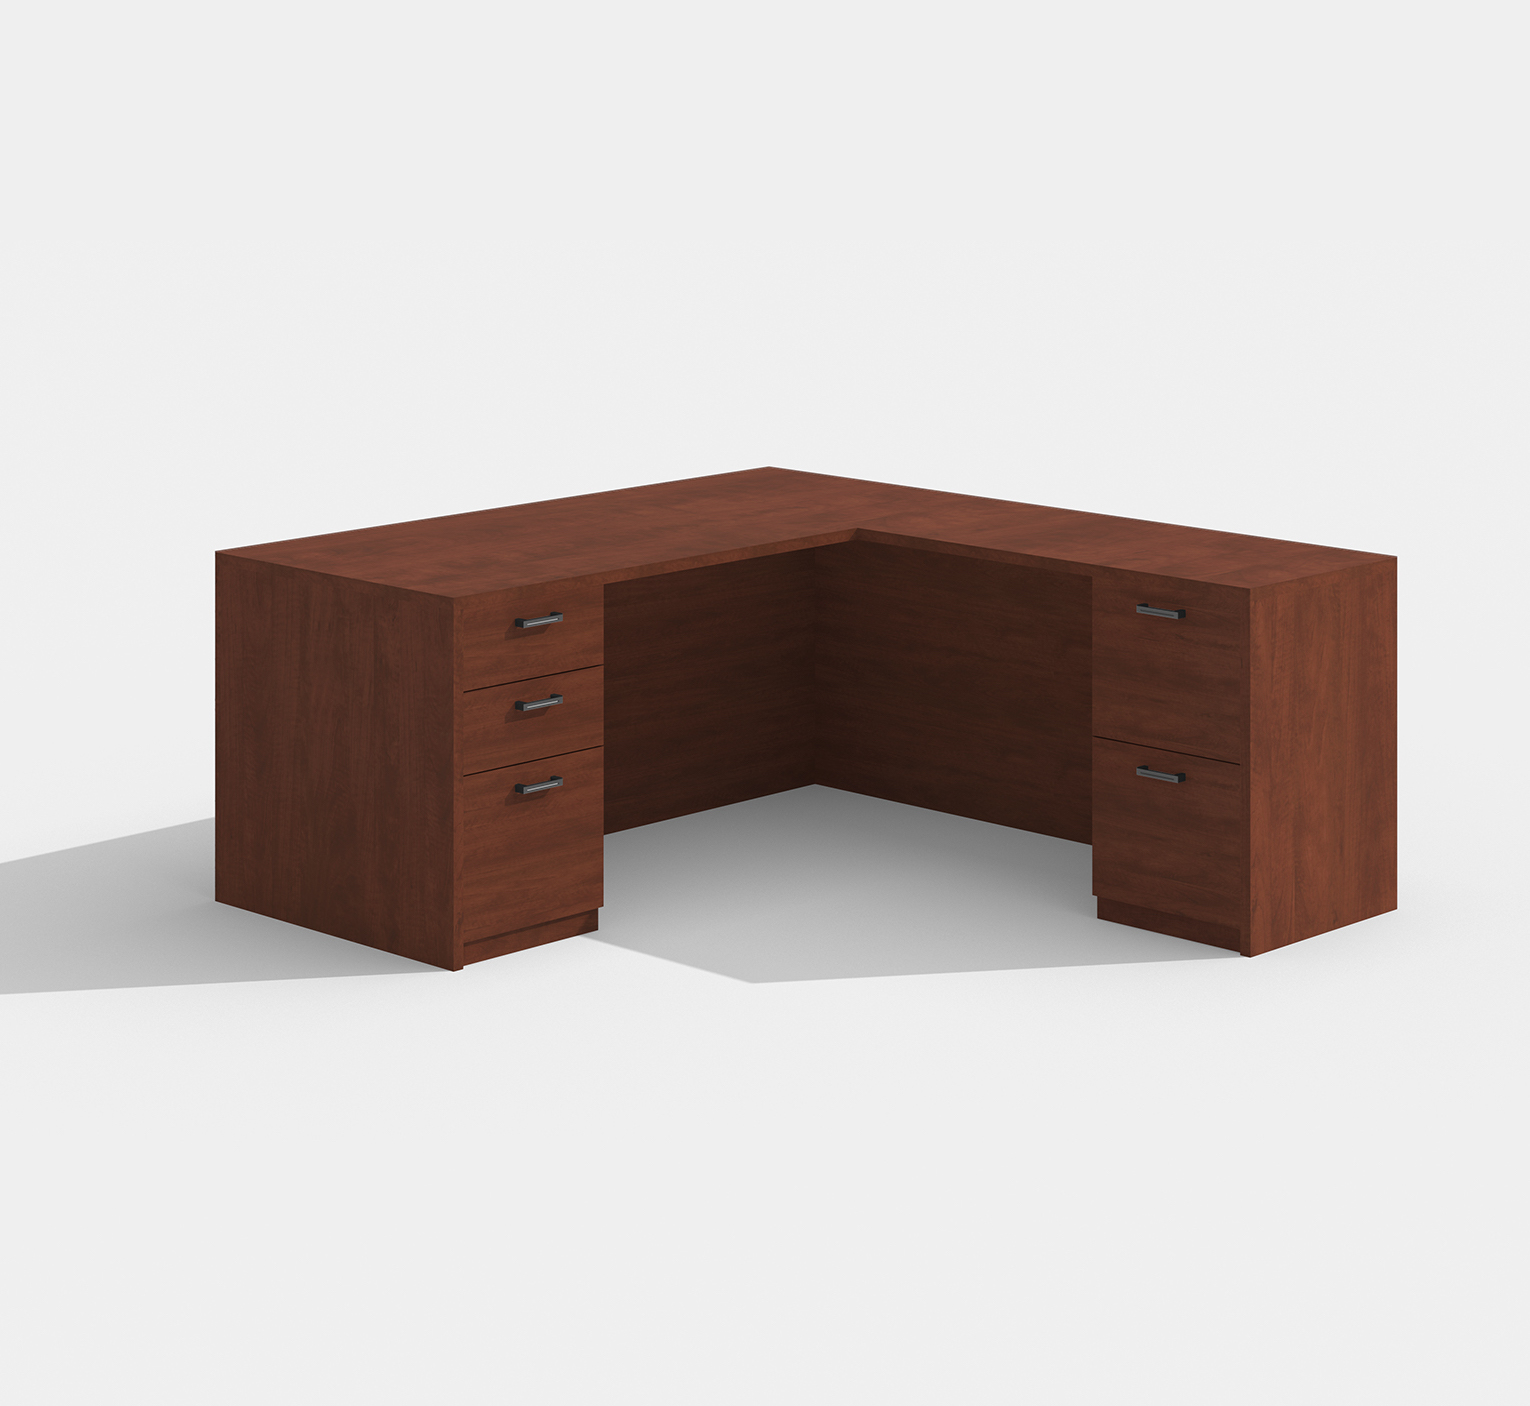 amber l-shaped desk am-313n with cherry finish